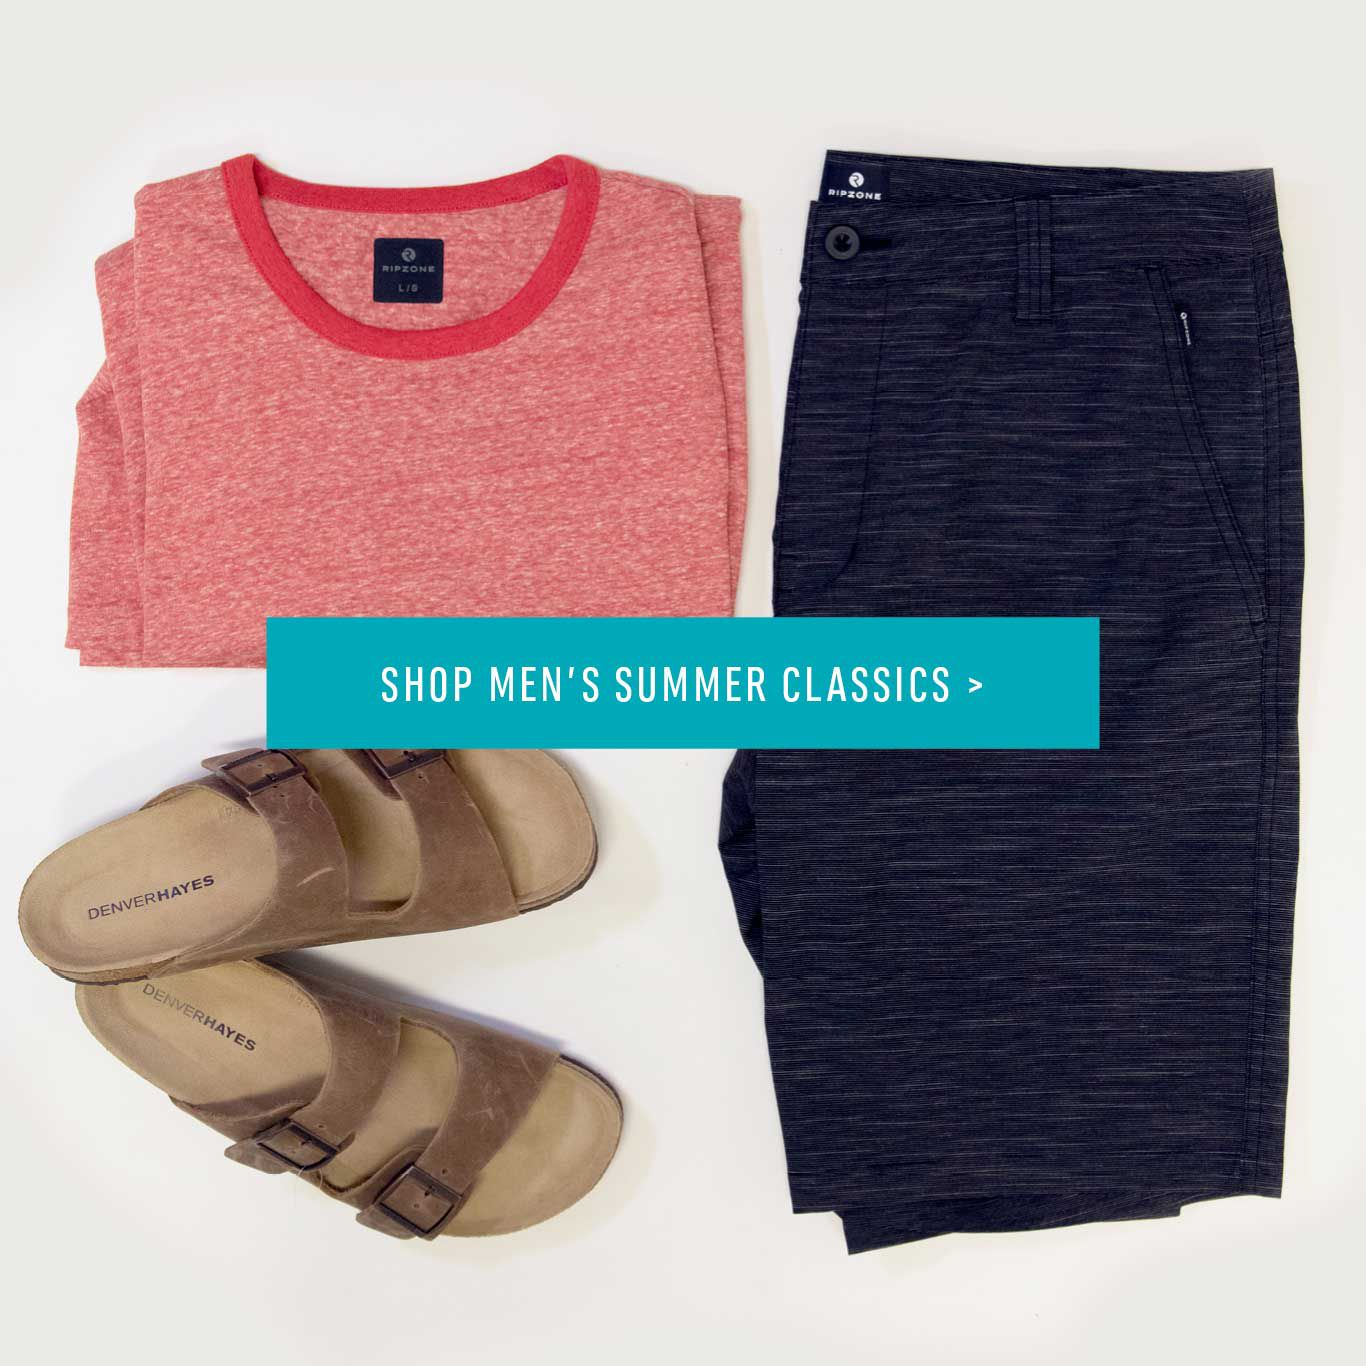 Shop Men's Summer Classics Collection